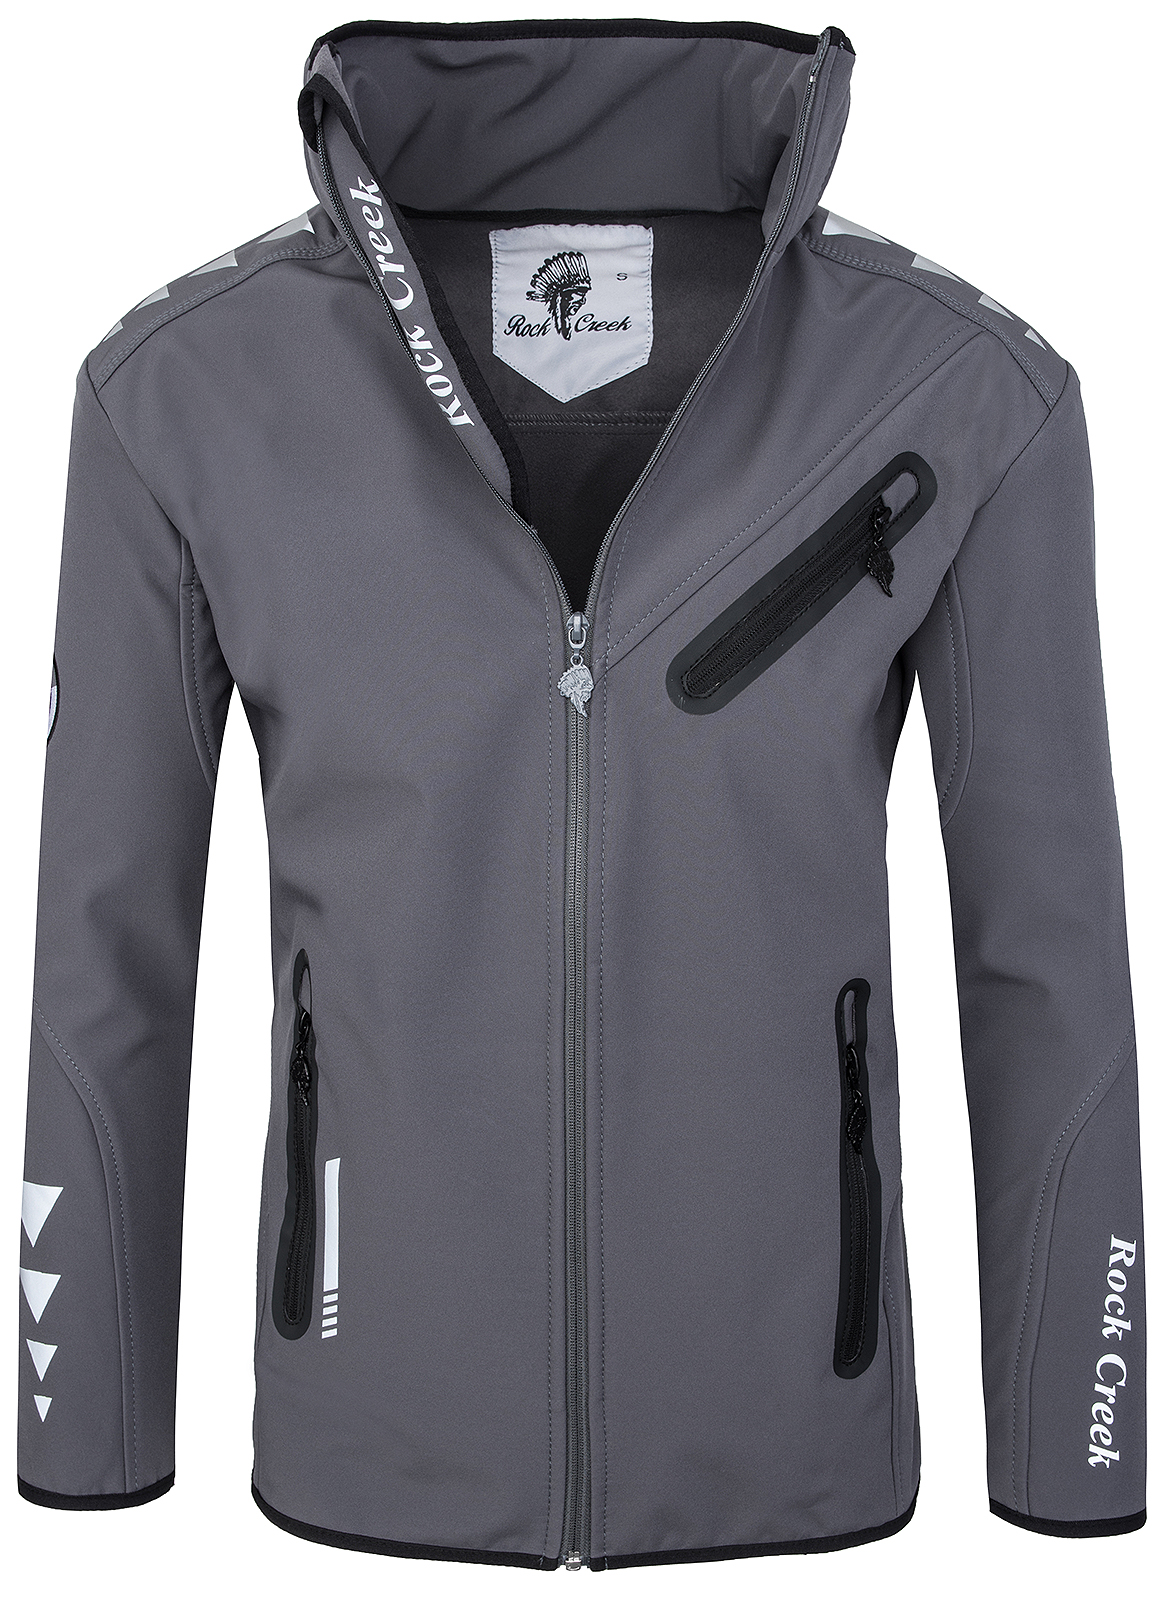 rock creek herren softshell jacke windbreaker bergangs outdoor jacke rc09 s 3xl ebay. Black Bedroom Furniture Sets. Home Design Ideas